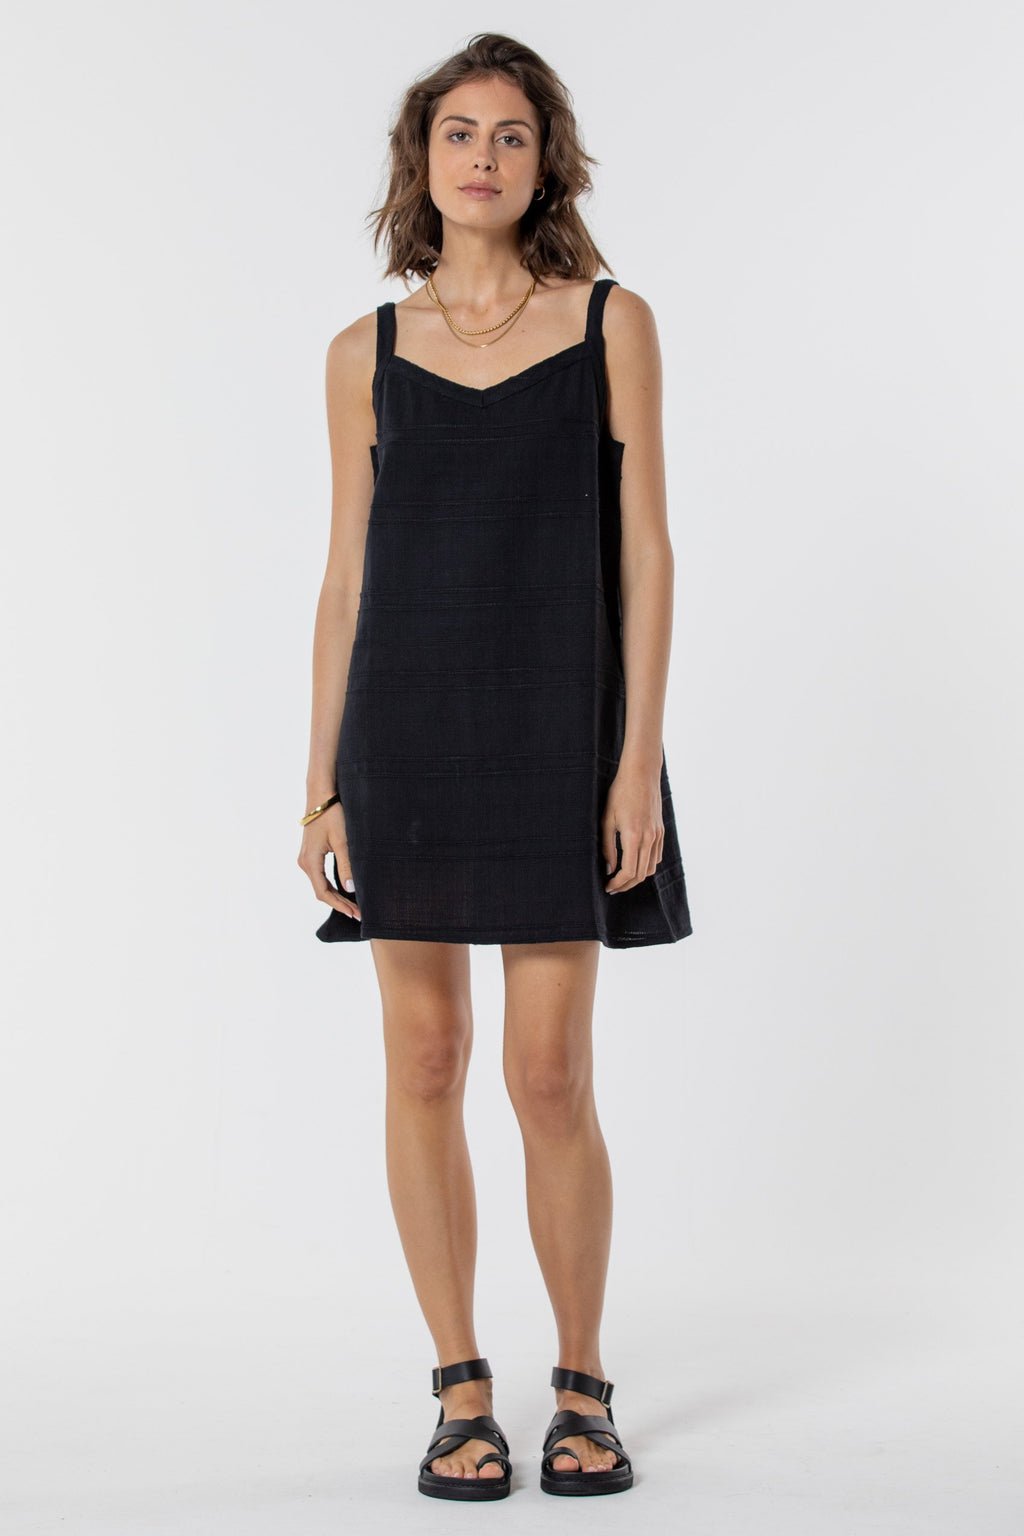 Saint Helena SOUTHBEACH MINI DRESS - NOIR BLACK